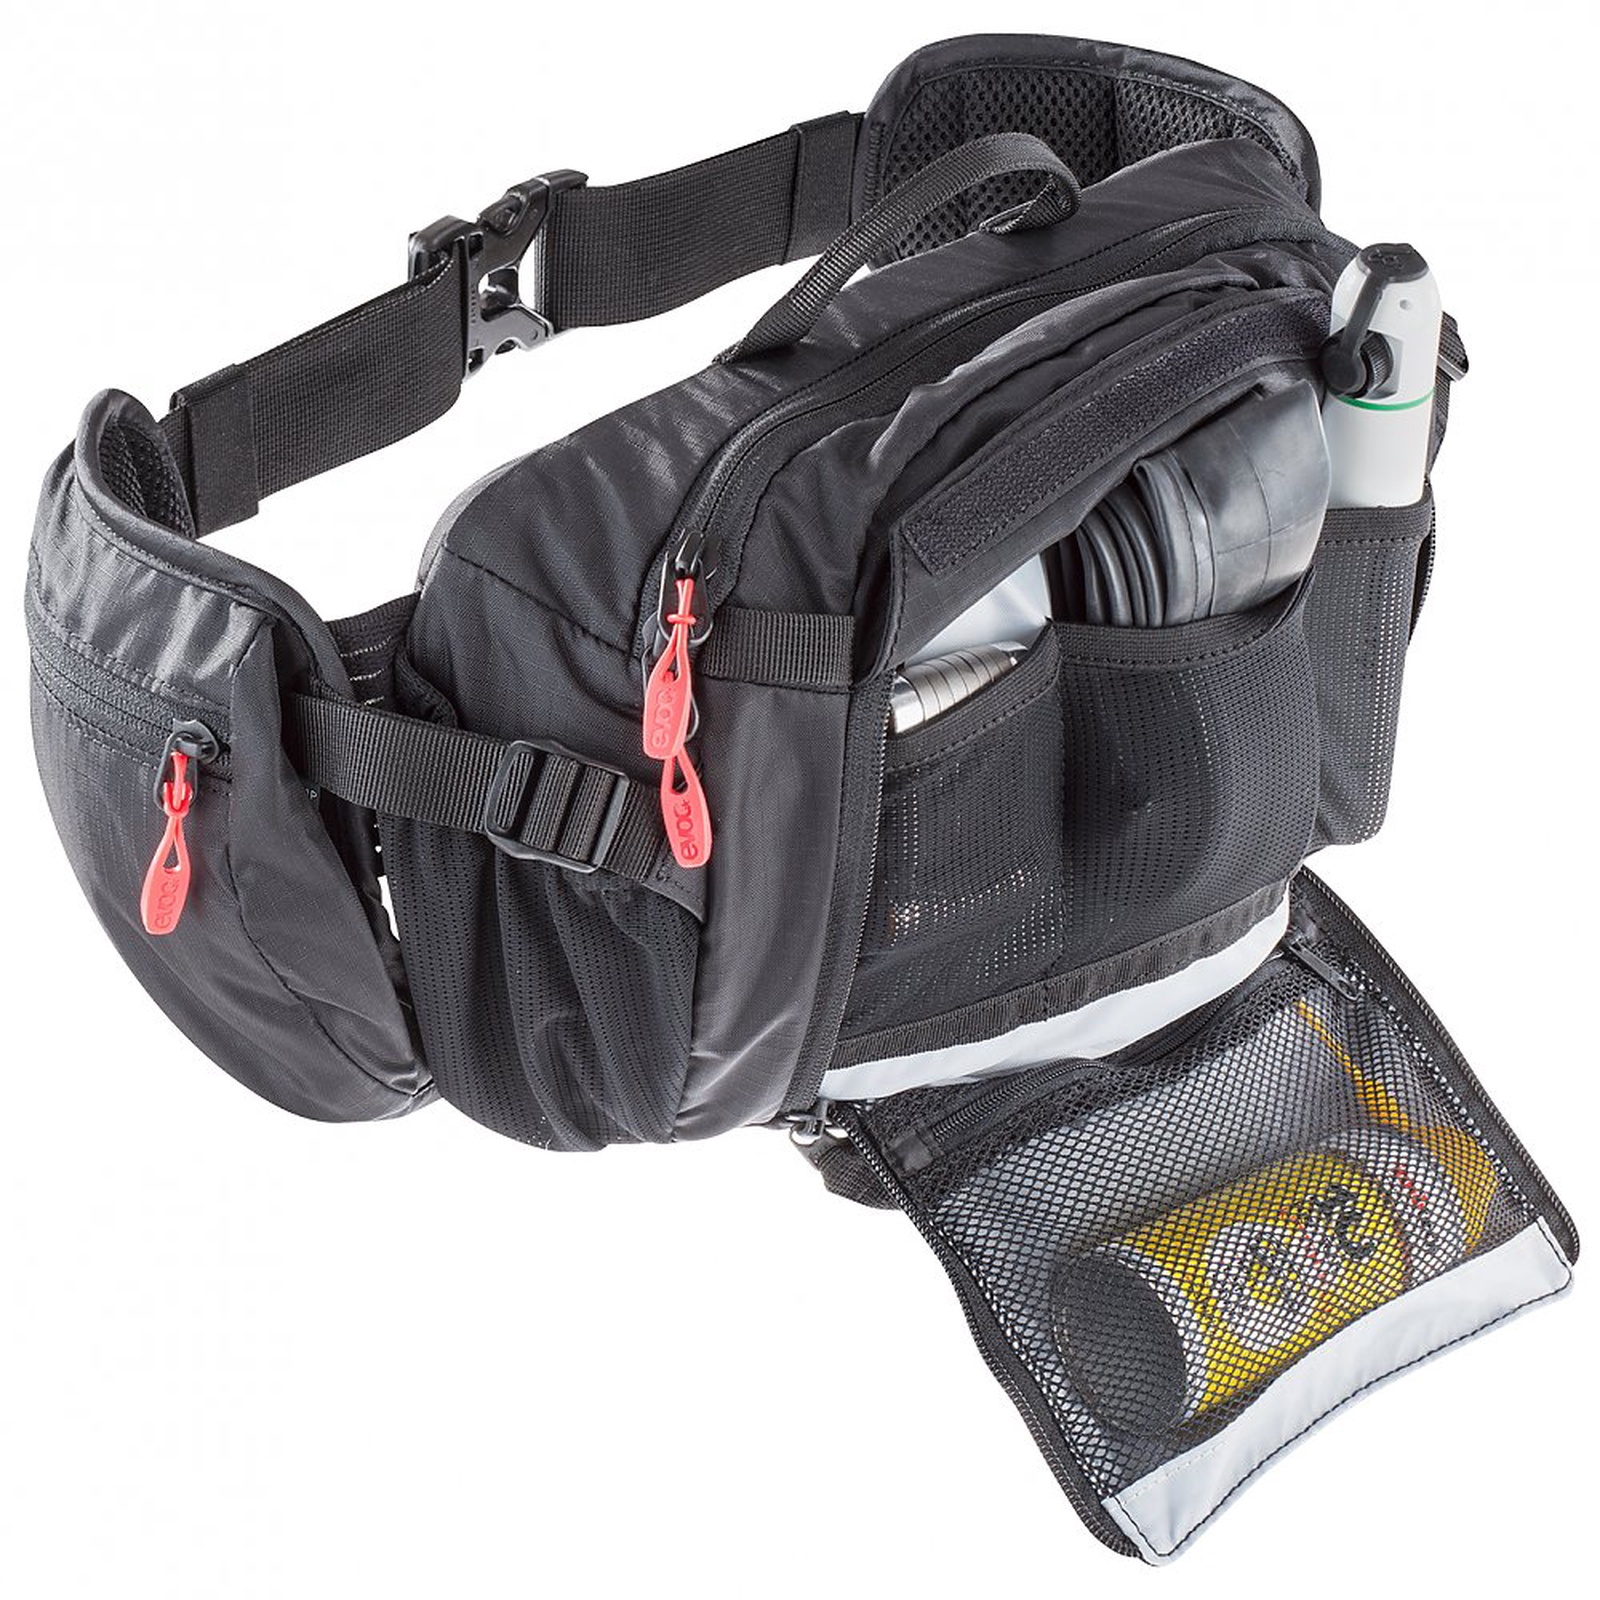 Hip Pack Race 3l + 1,5l Bladder